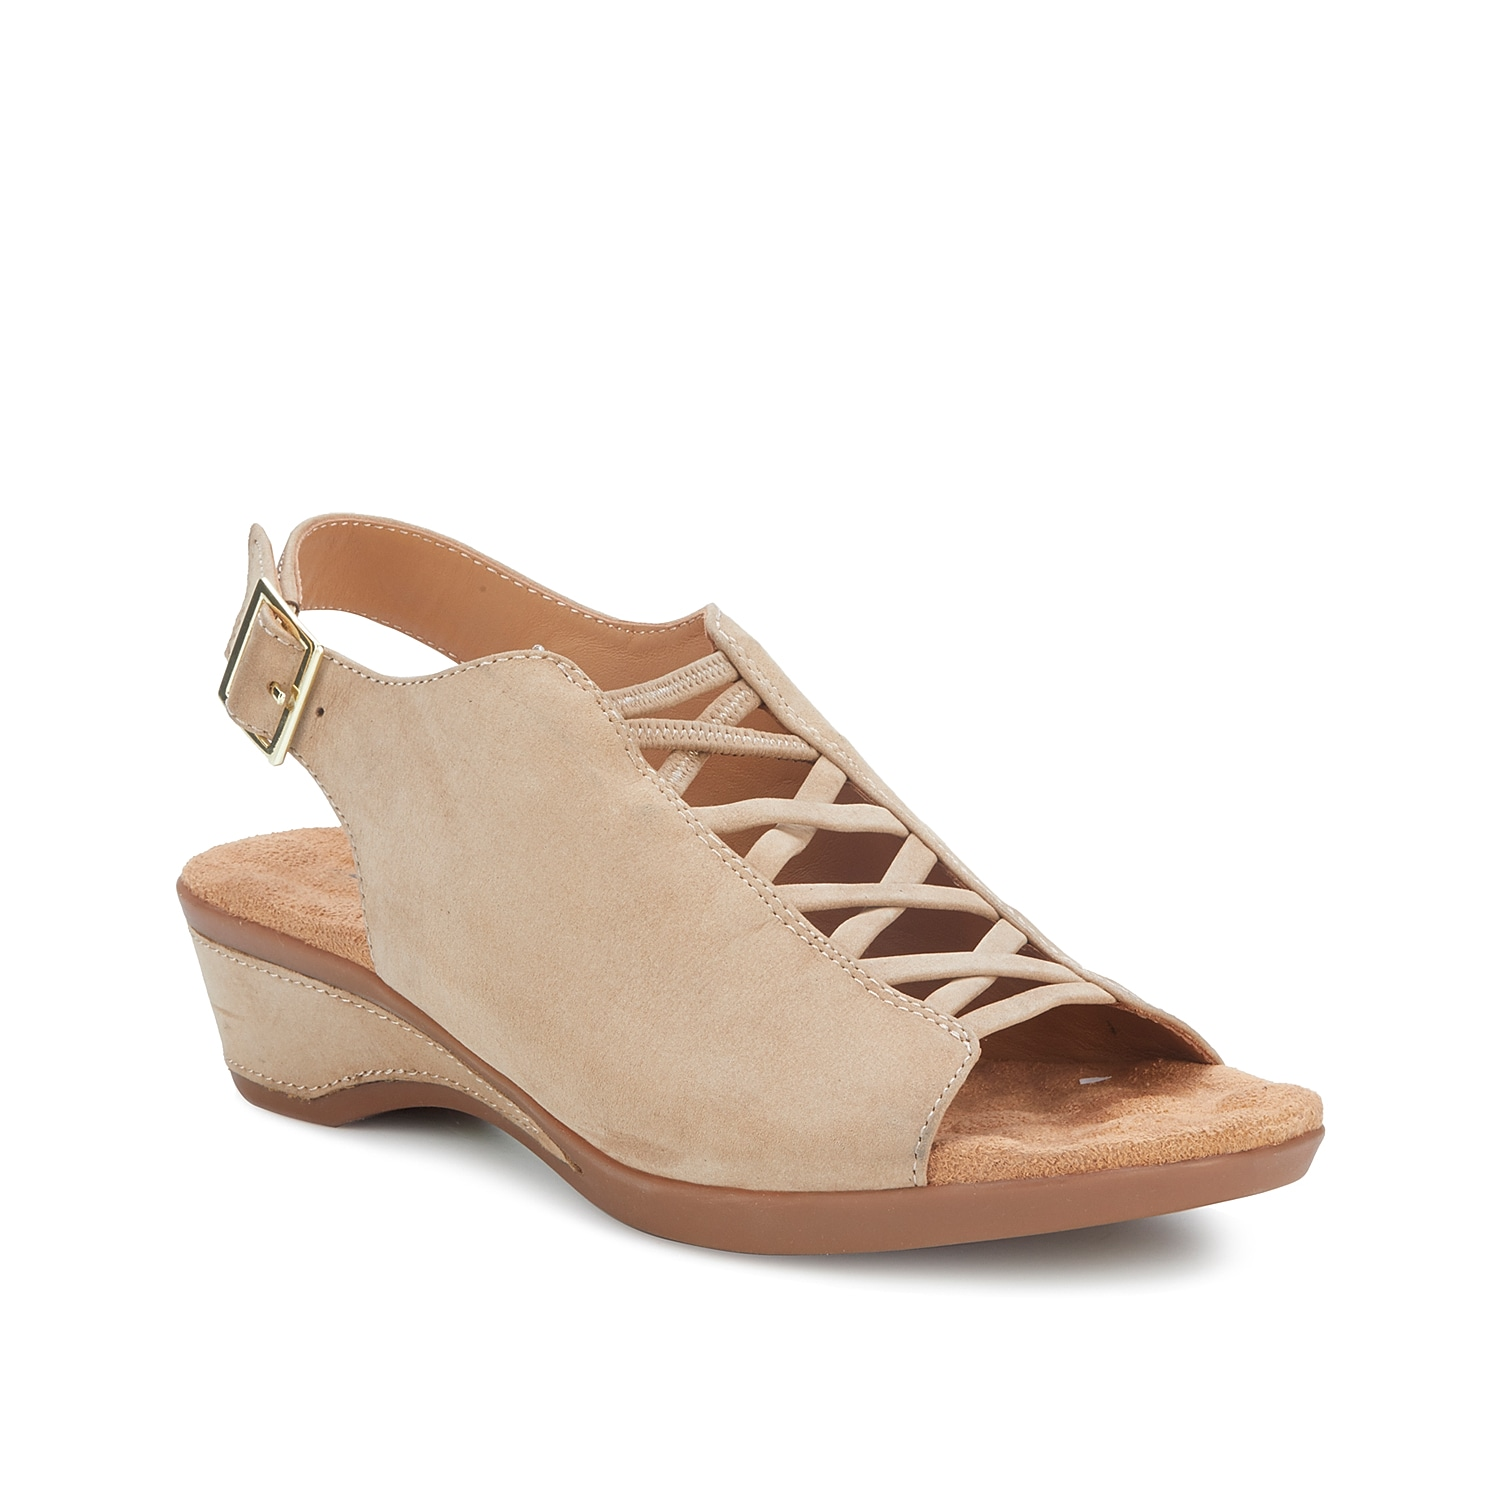 Once you buckle into the Kody wedge sandal from Walking Cradles, you\\\'ll want to wear them everyday! A Tiny Pillows footbed cushions every step while the corset accent adds modern style.